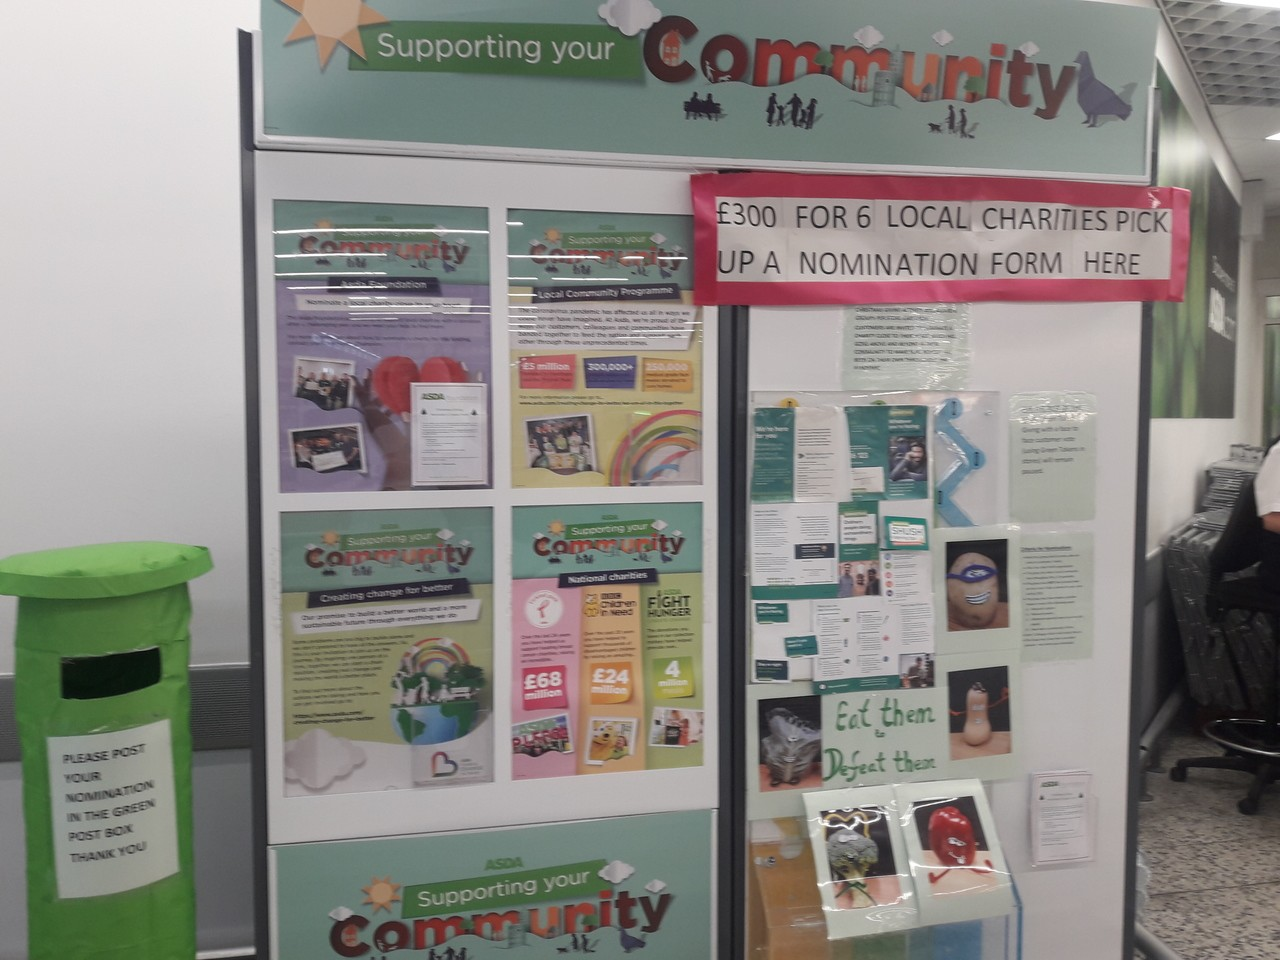 £300 available for six local causes – send in your nominations | Asda Bournemouth